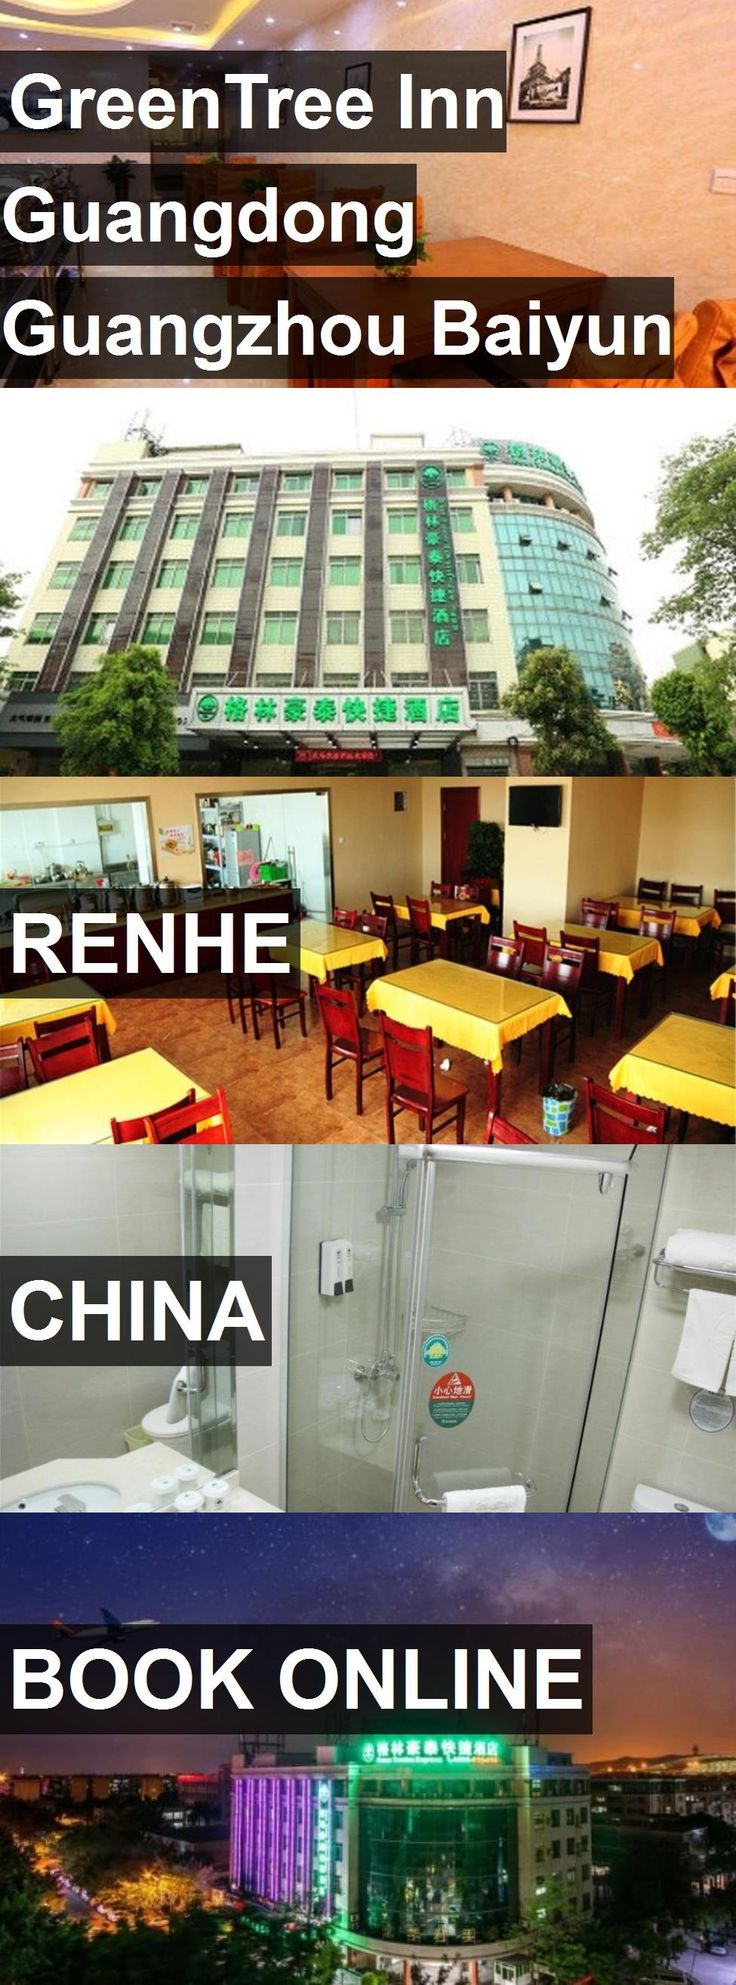 Hotel GreenTree Inn Guangdong Guangzhou Baiyun International Airport Huaxi Road Express Hotel in Renhe, China. For more information, photos, reviews and best prices please follow the link. #China #Renhe #GreenTreeInnGuangdongGuangzhouBaiyunInternationalAirportHuaxiRoadExpressHotel #hotel #travel #vacation